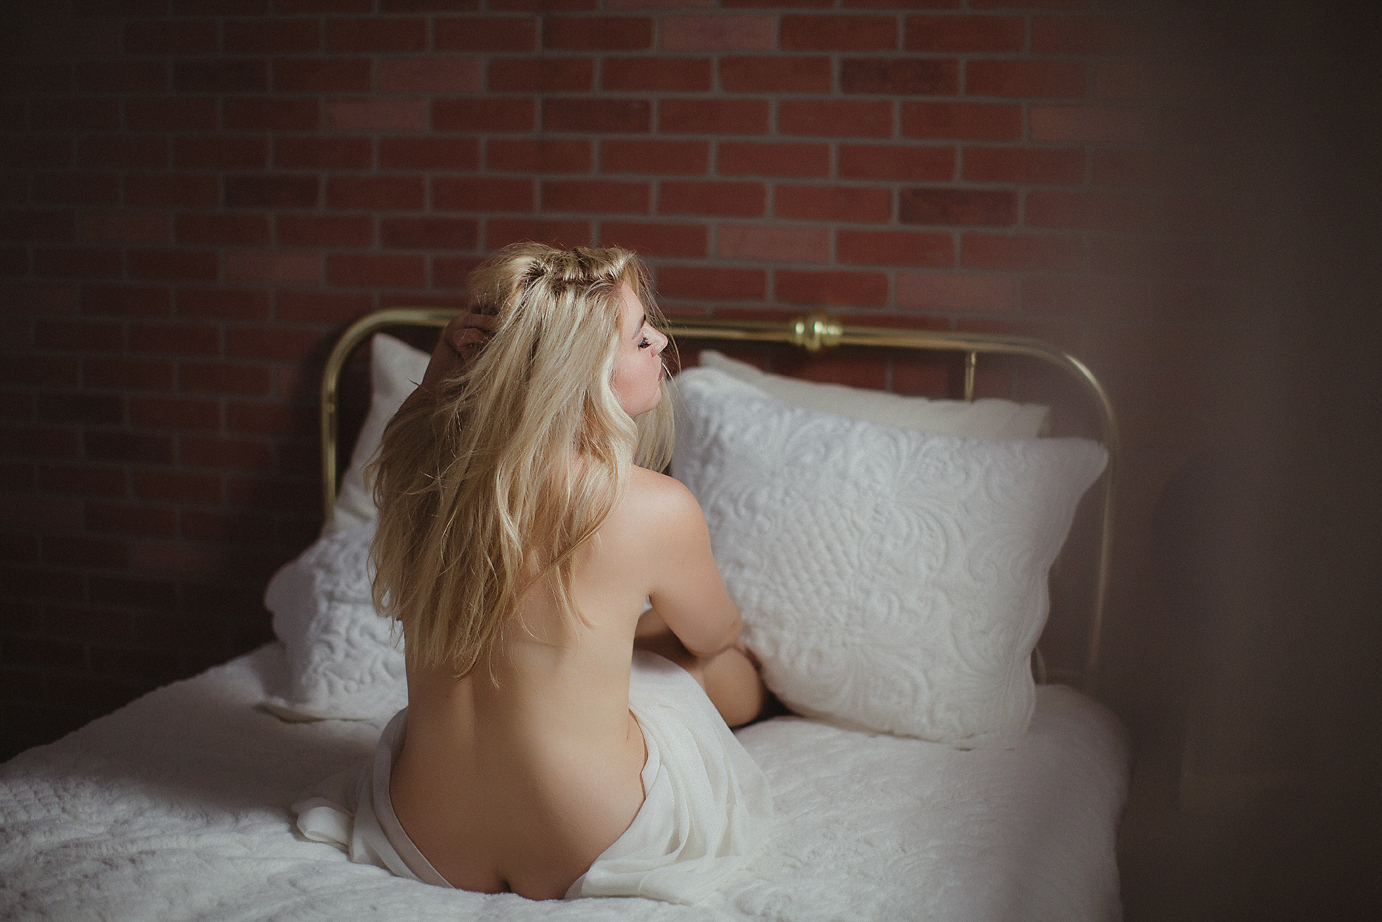 orange-county-boudoir-photography-studio-sexy-naked-nude-gorgeous-bedroom.jpg